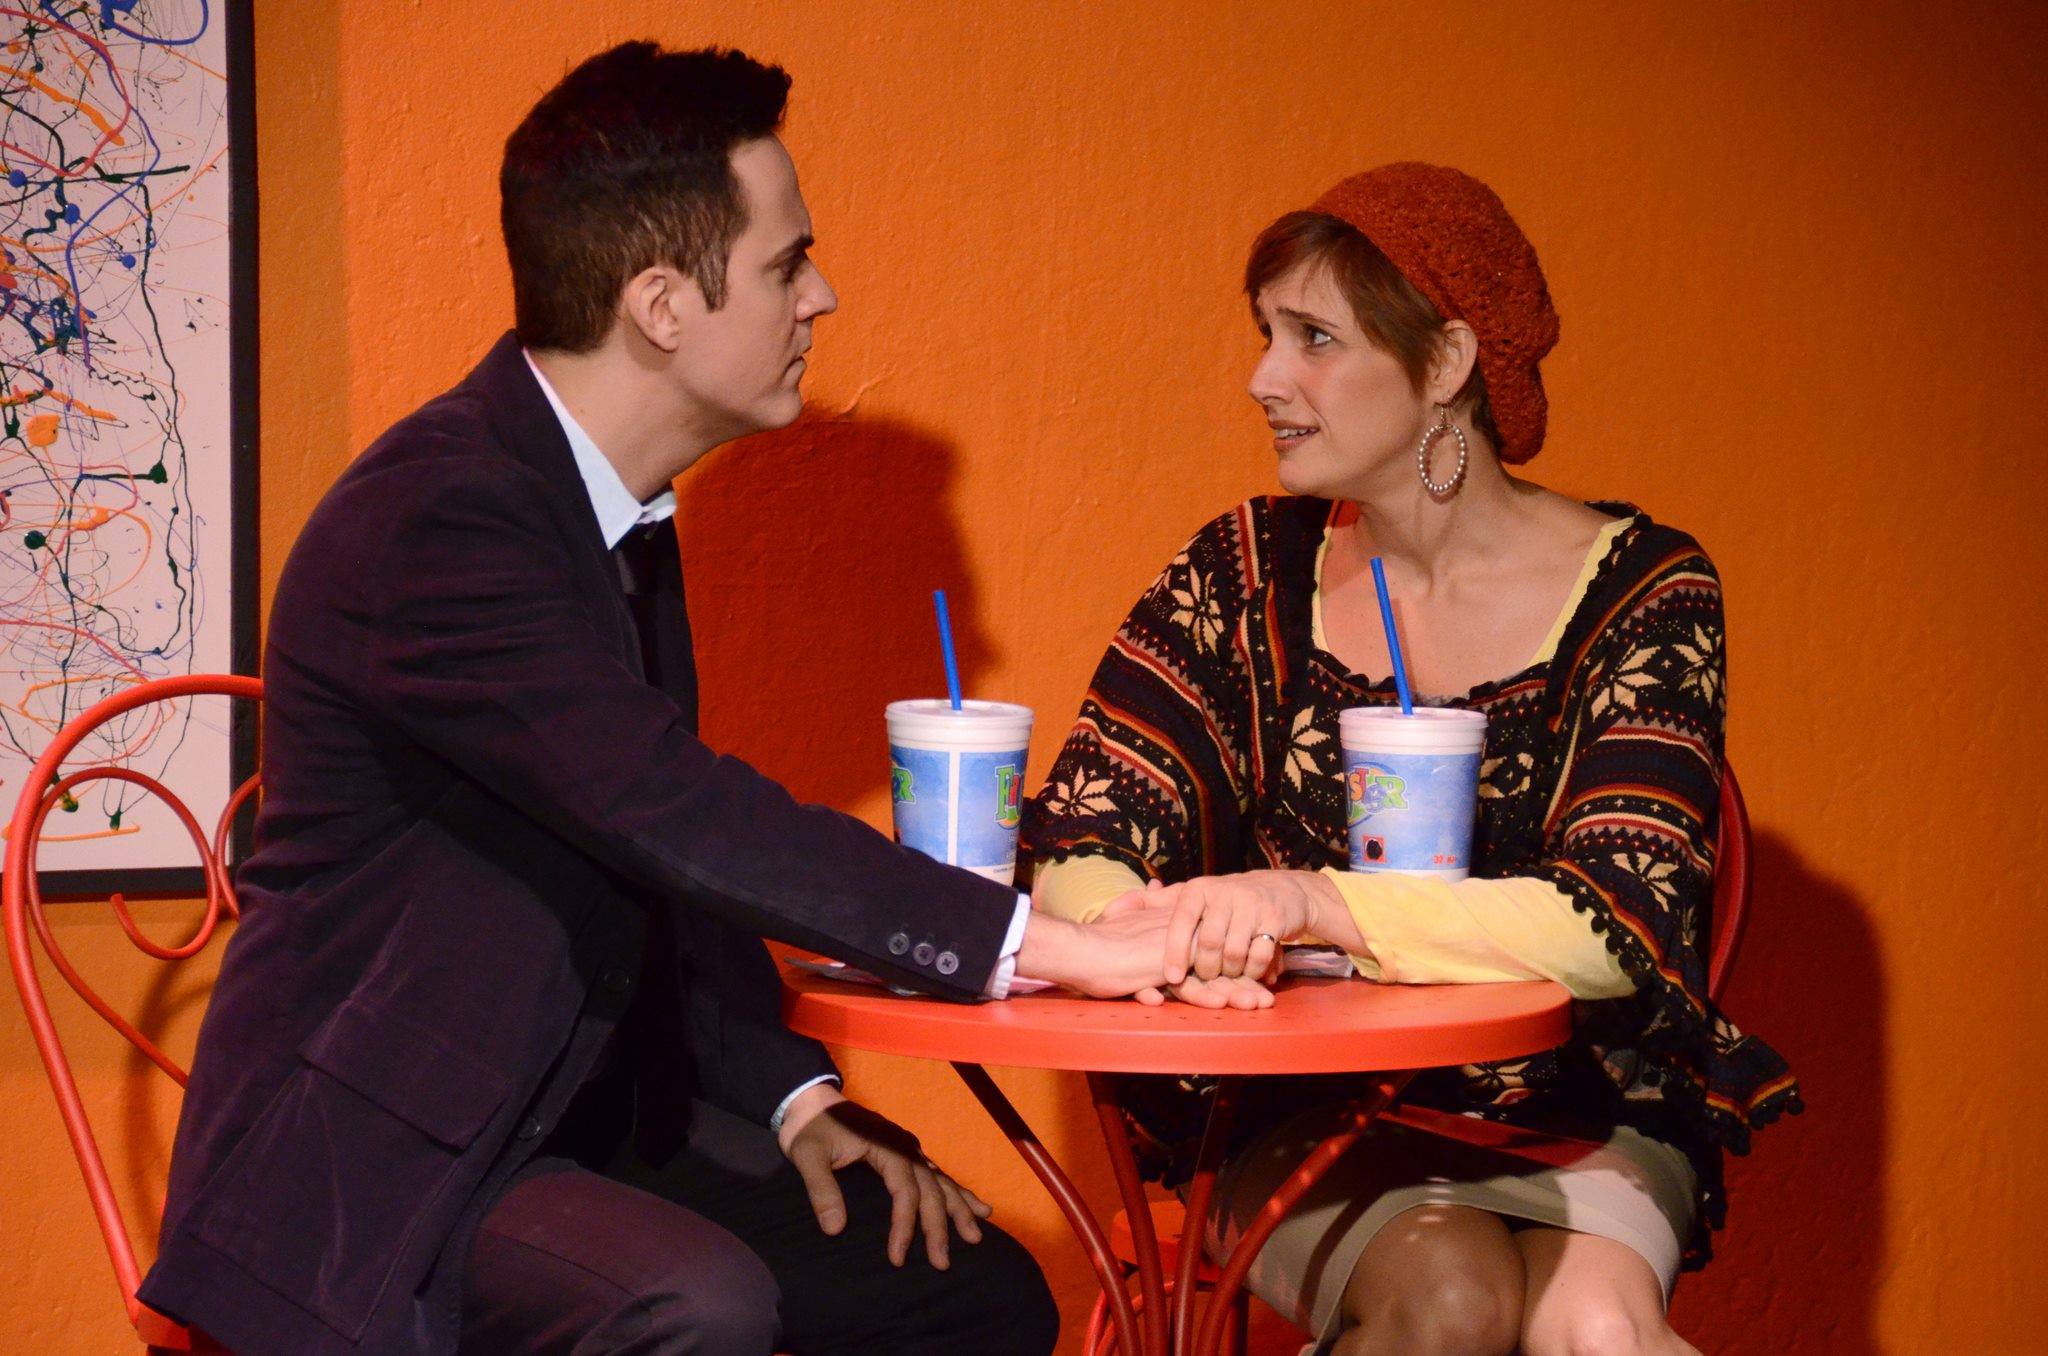 """Brian Weiss and Shana Rebilas Bousard in """"Becky Shaw"""" at Theatre Artists Studio. (Photo by Mark Gluckman)"""